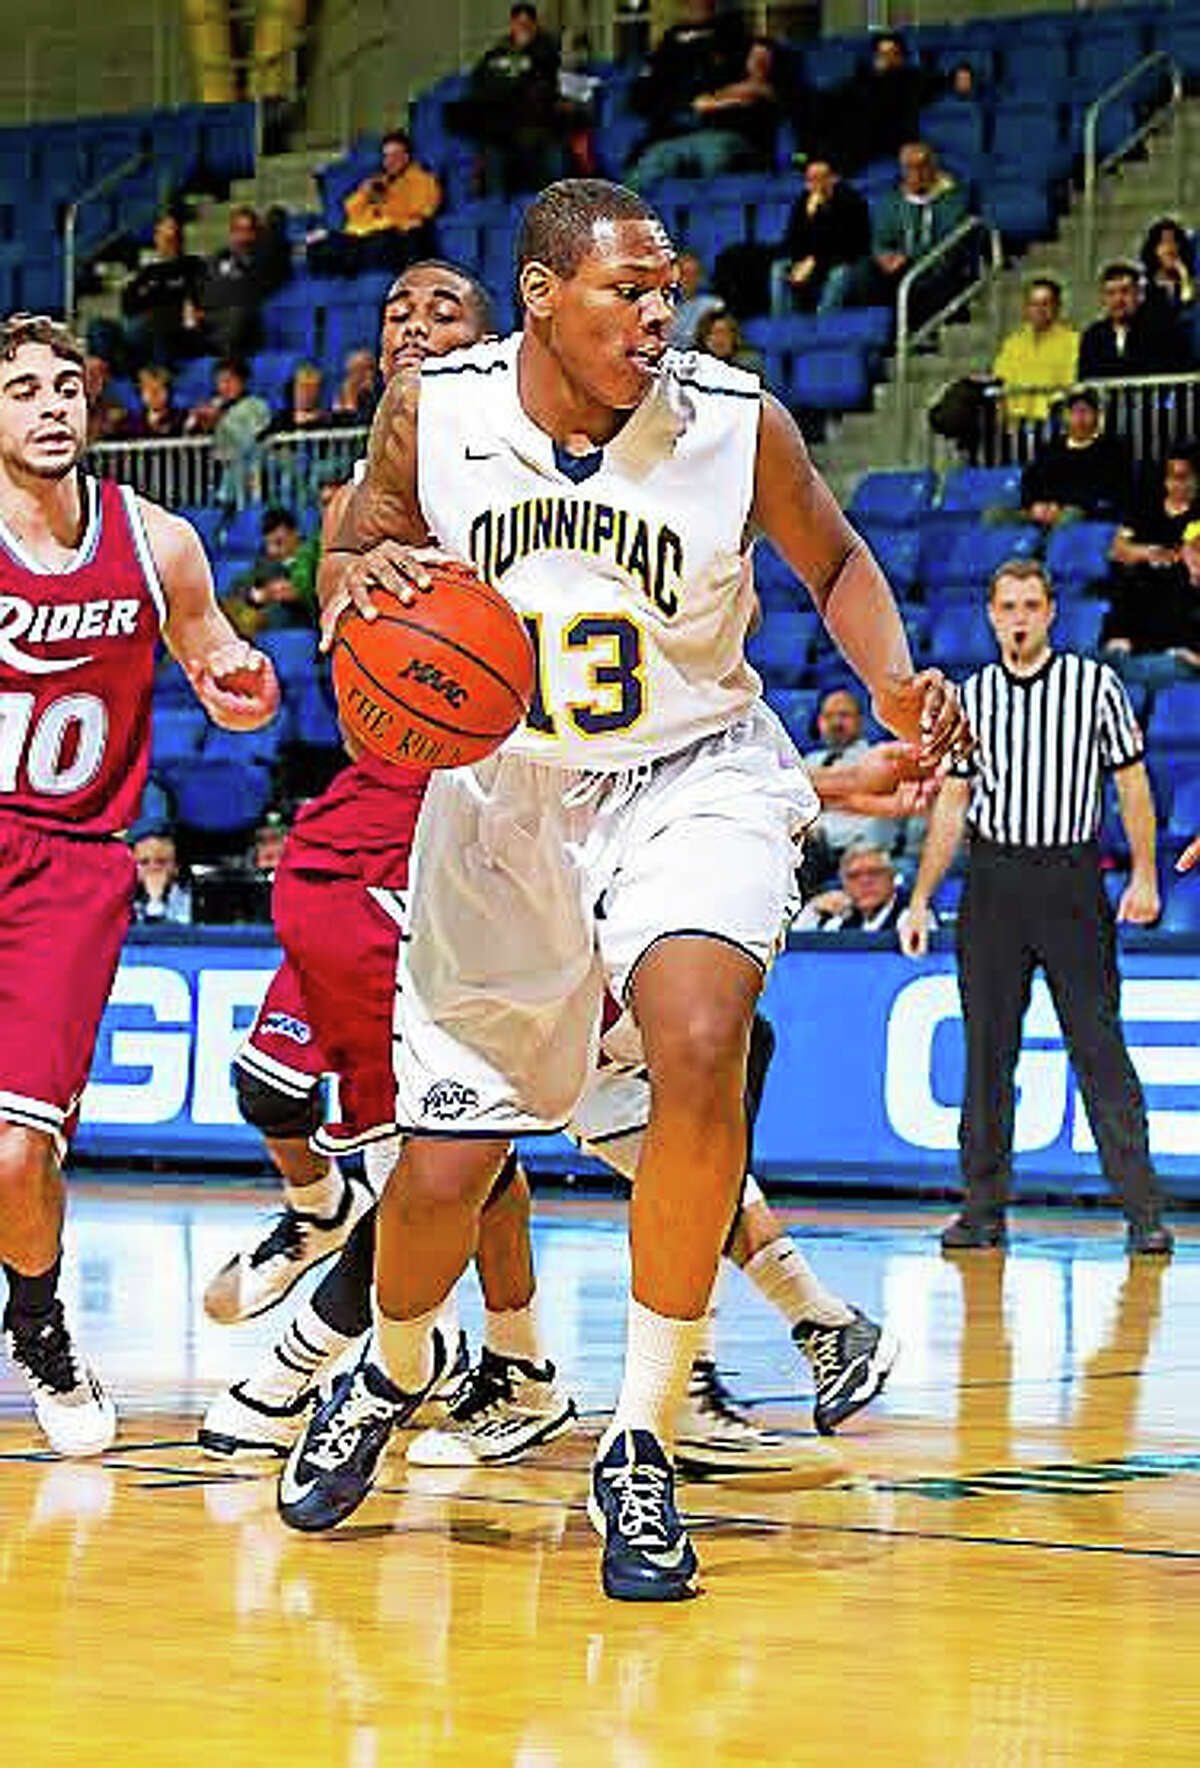 Hillhouse product Chaise Daniels could be the next Bobcats big man to play a starring role for Quinnipiac.